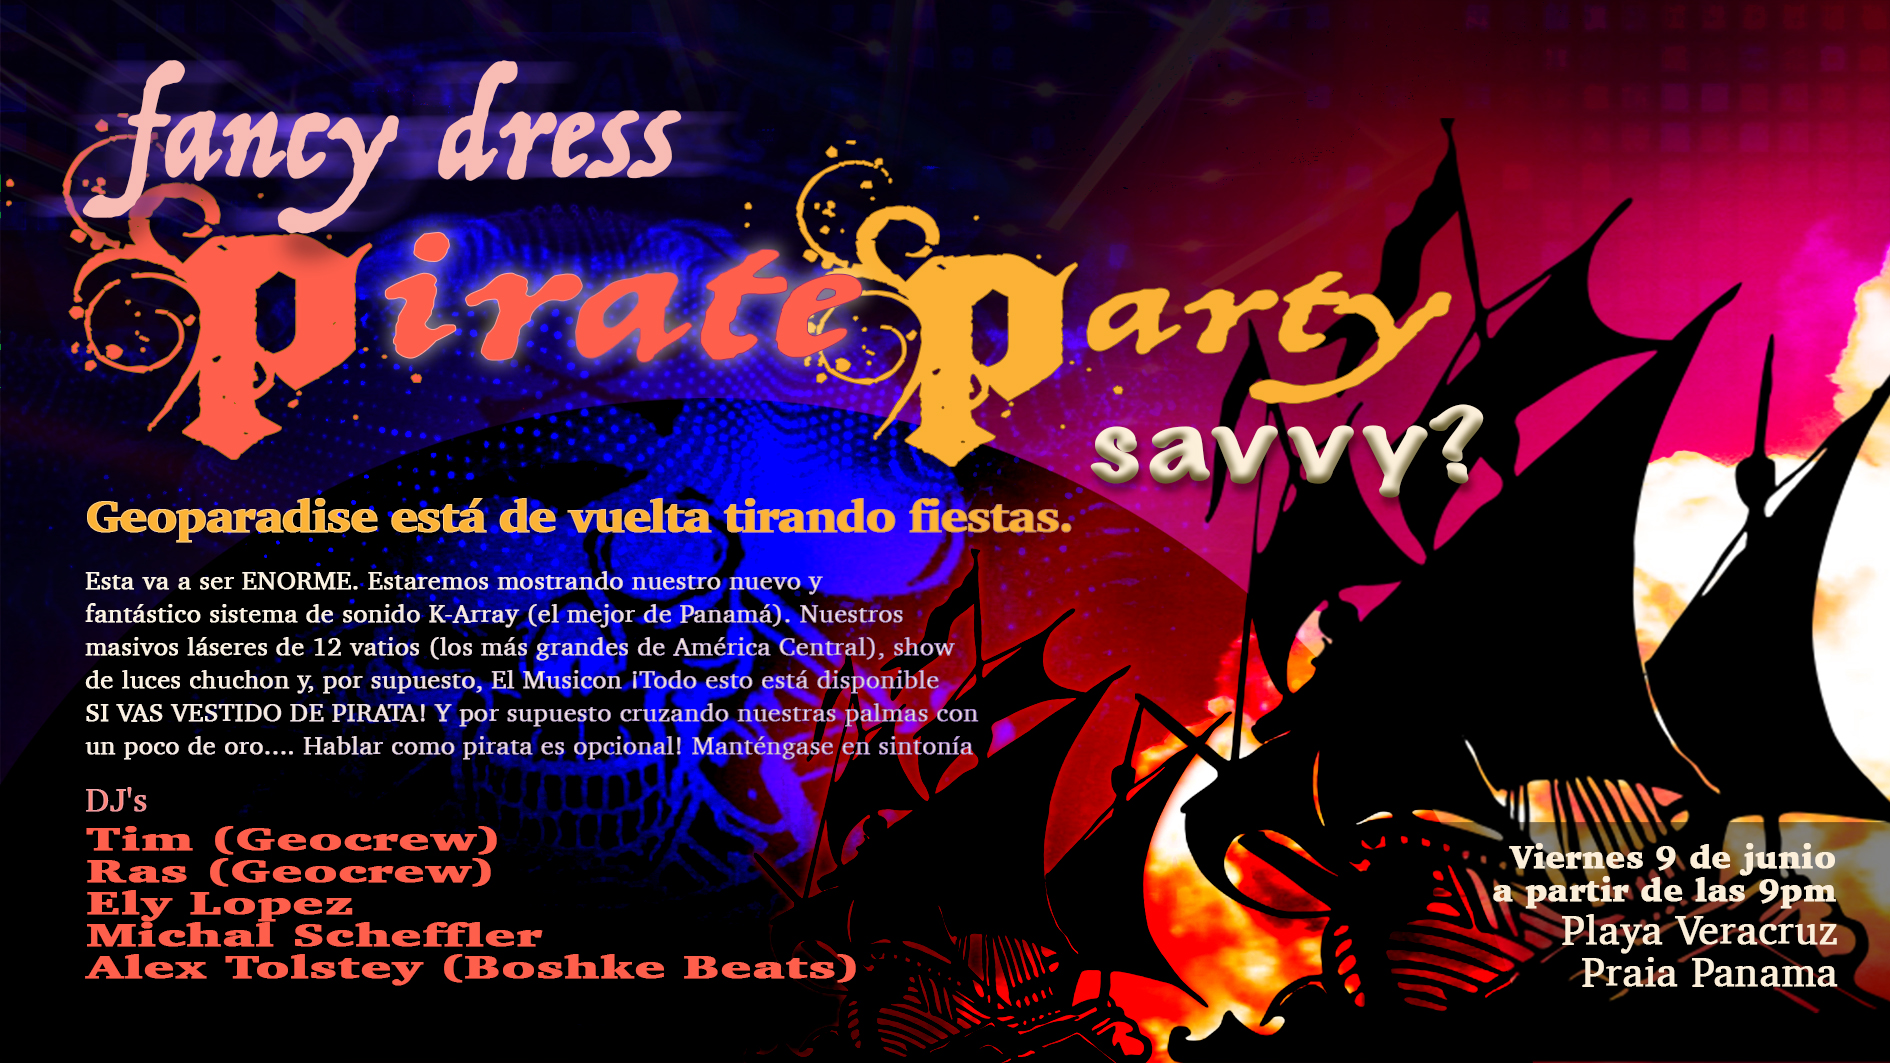 pirate party copy 2.jpg